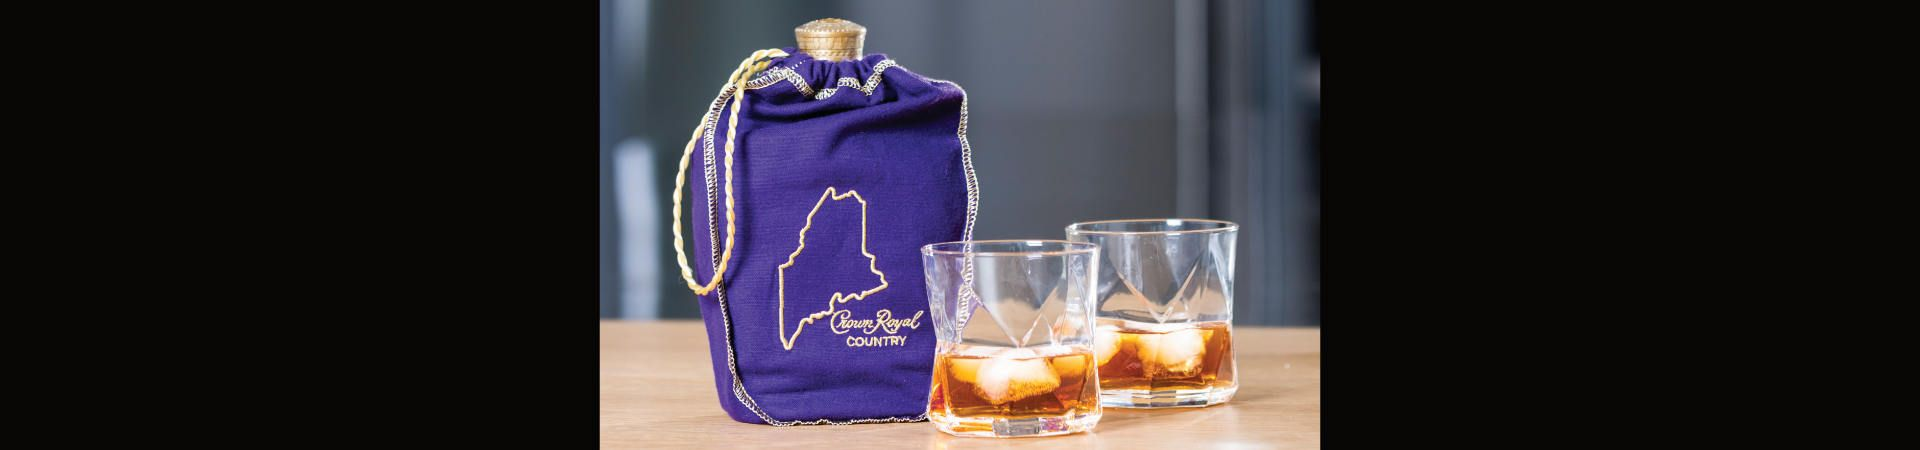 Crown Royal in limited edition Maine bag